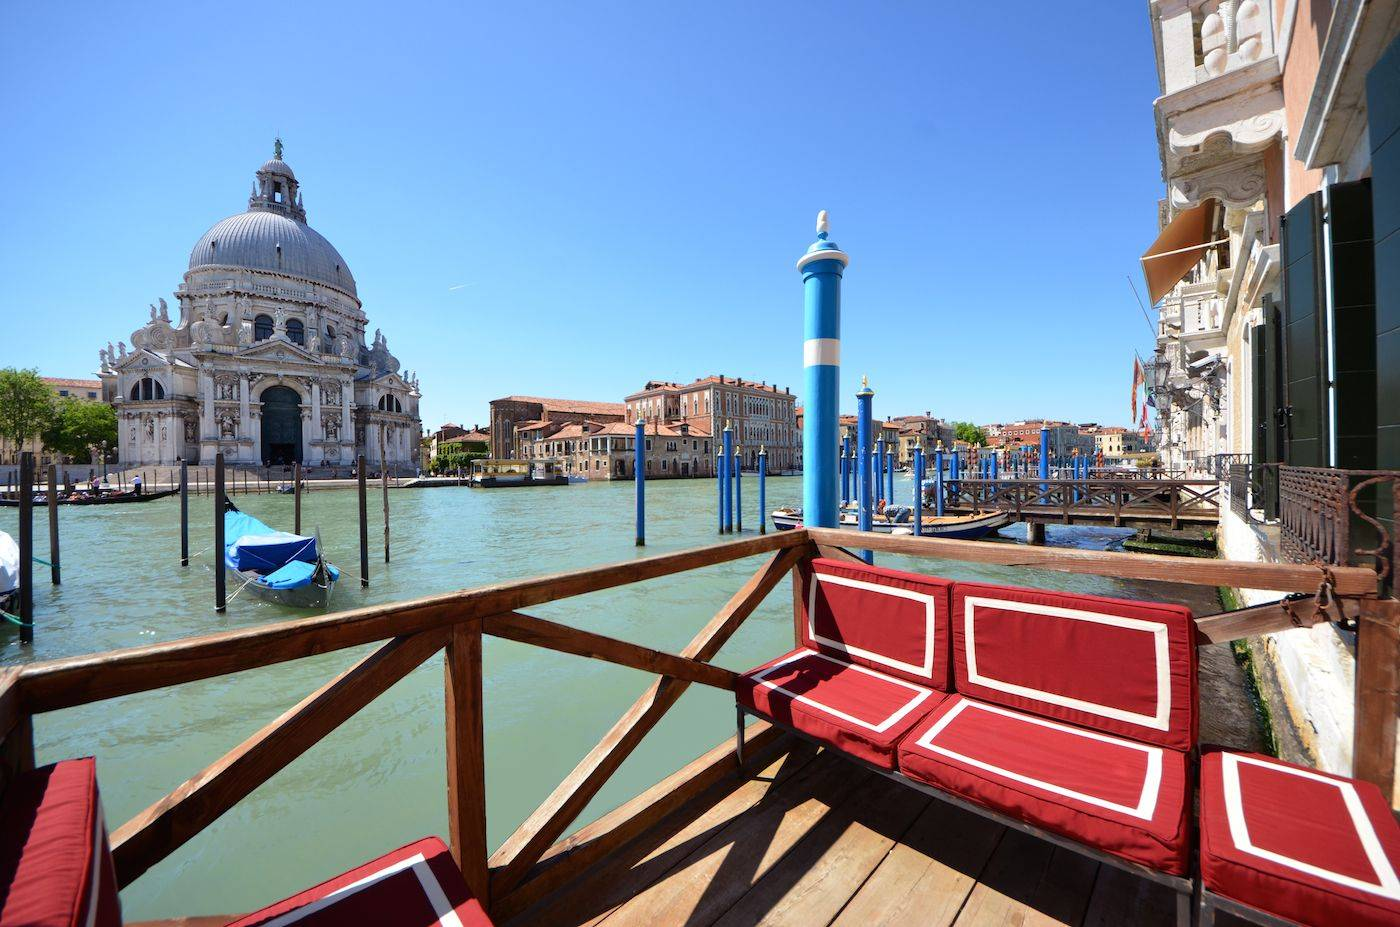 the Private Terrace on the Grand Canal is absolutely stunning!